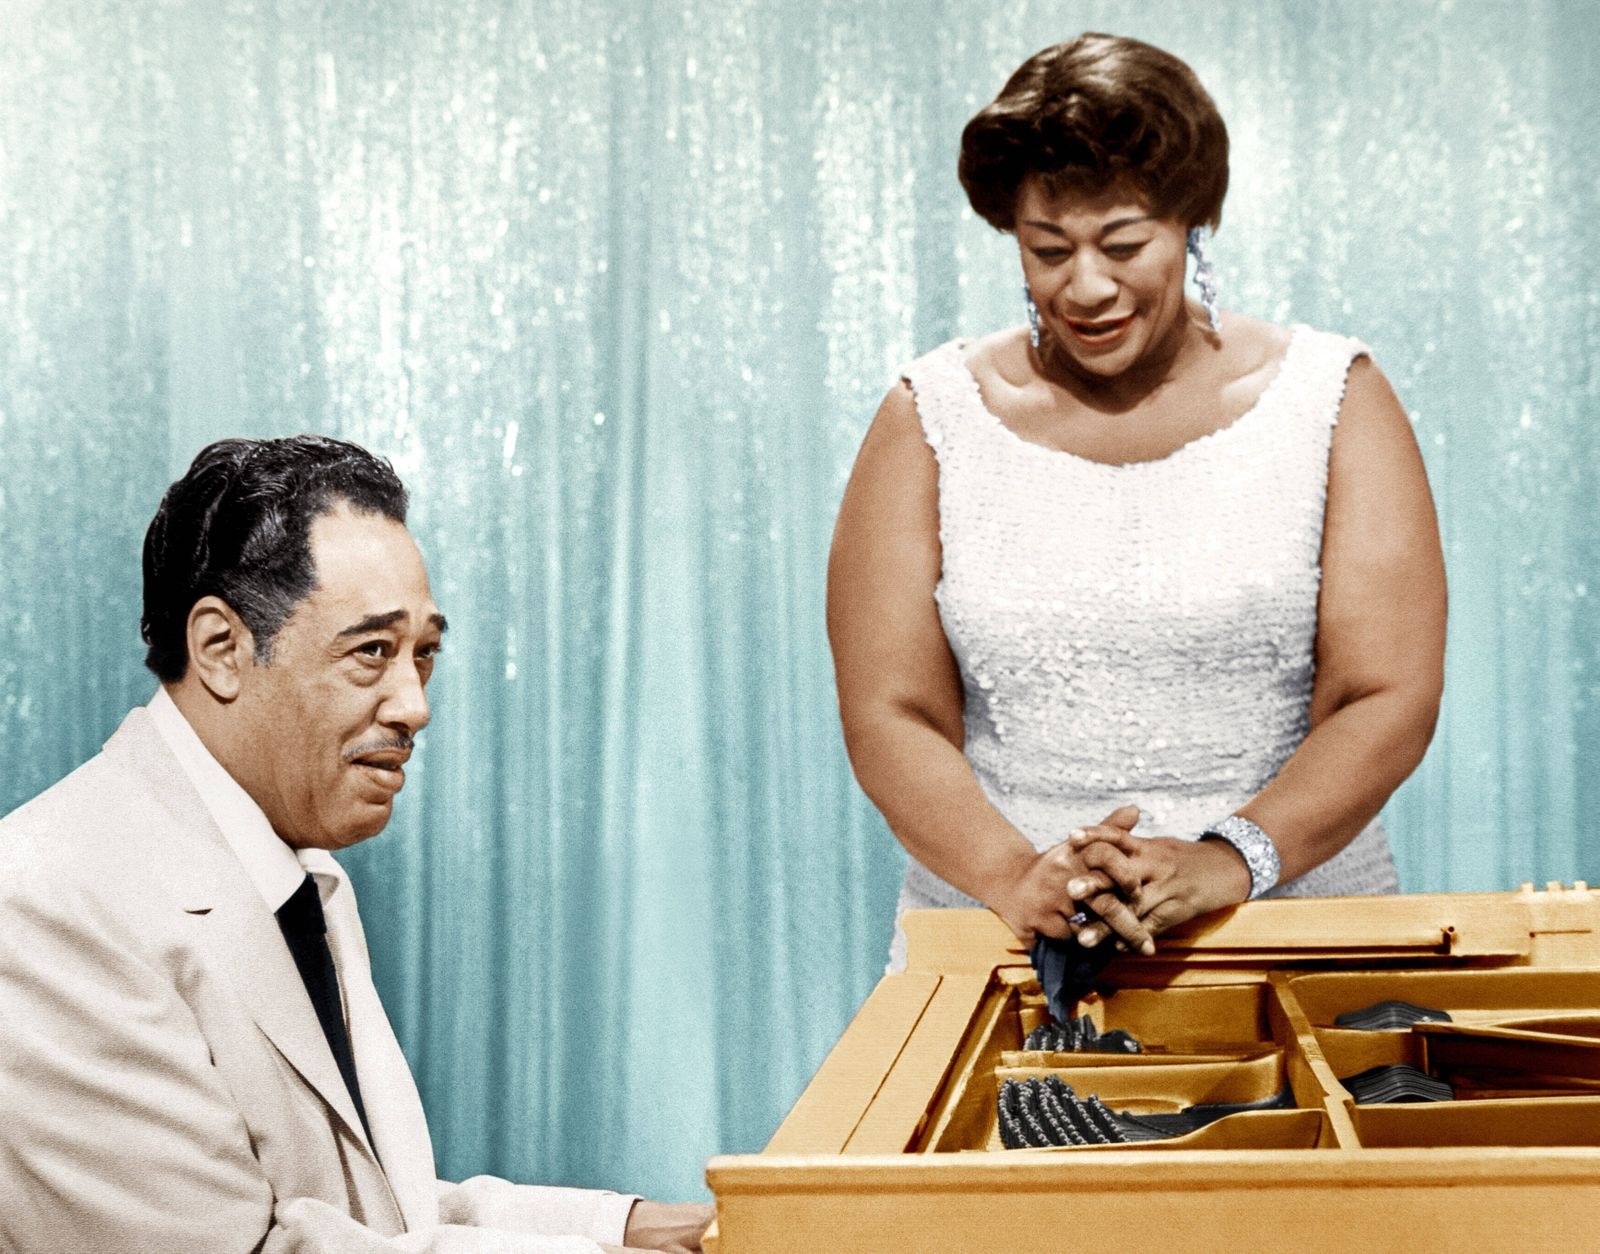 THE BELL TELEPHONE HOUR, from left: Duke Ellington, Ella Fitzgerald, (aired February 10, 1959), 1959-68. Courtesy Evere